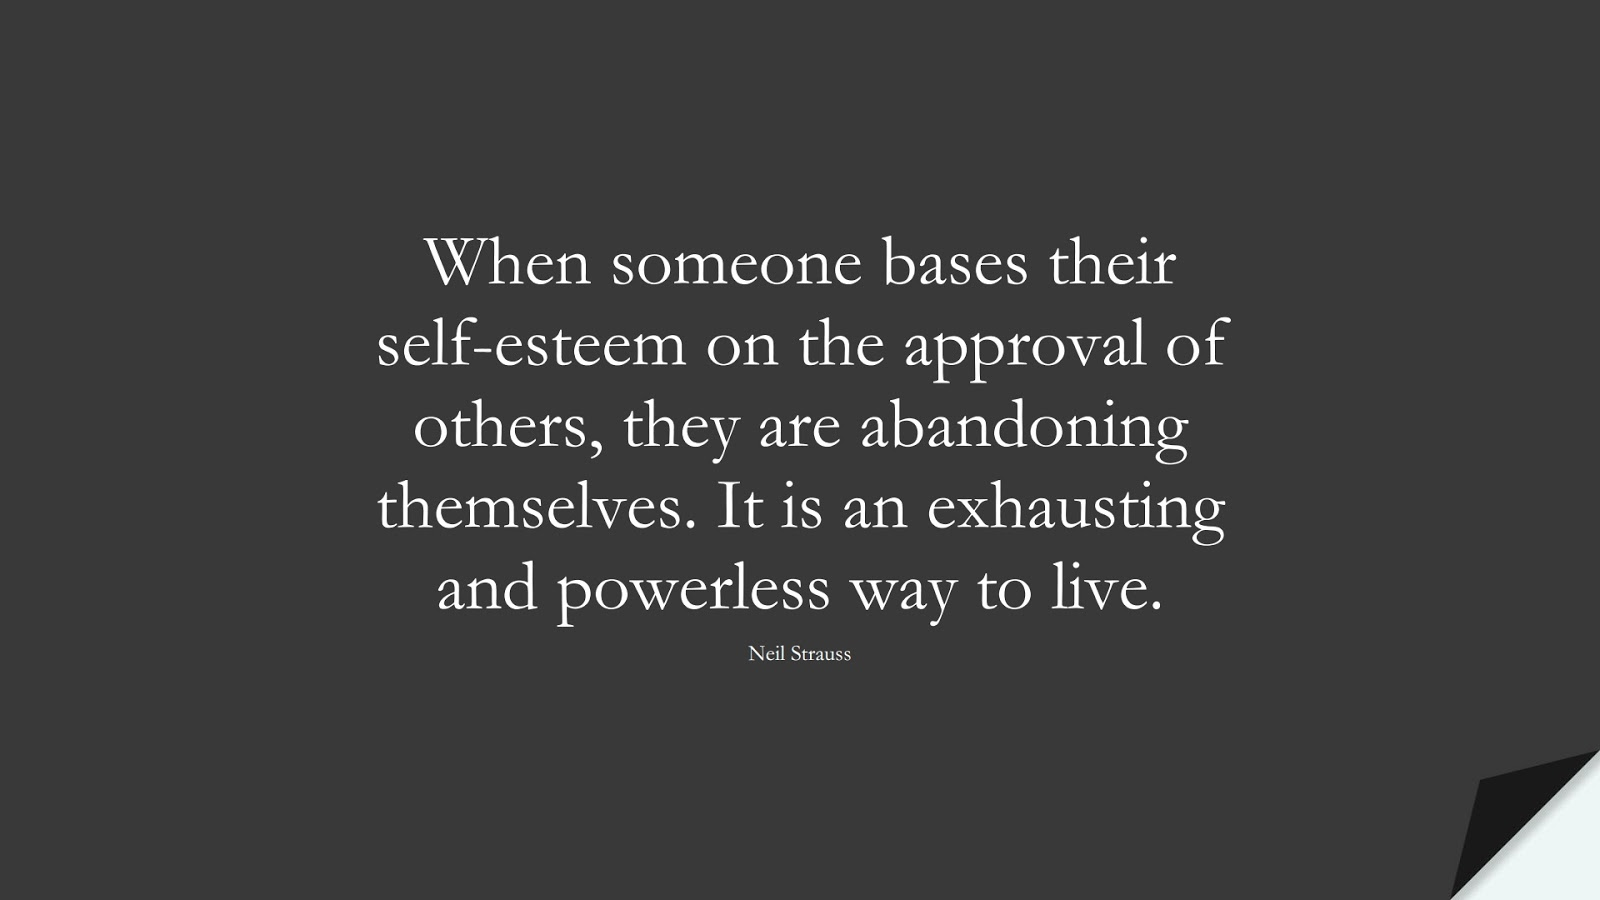 When someone bases their self-esteem on the approval of others, they are abandoning themselves. It is an exhausting and powerless way to live. (Neil Strauss);  #SelfEsteemQuotes